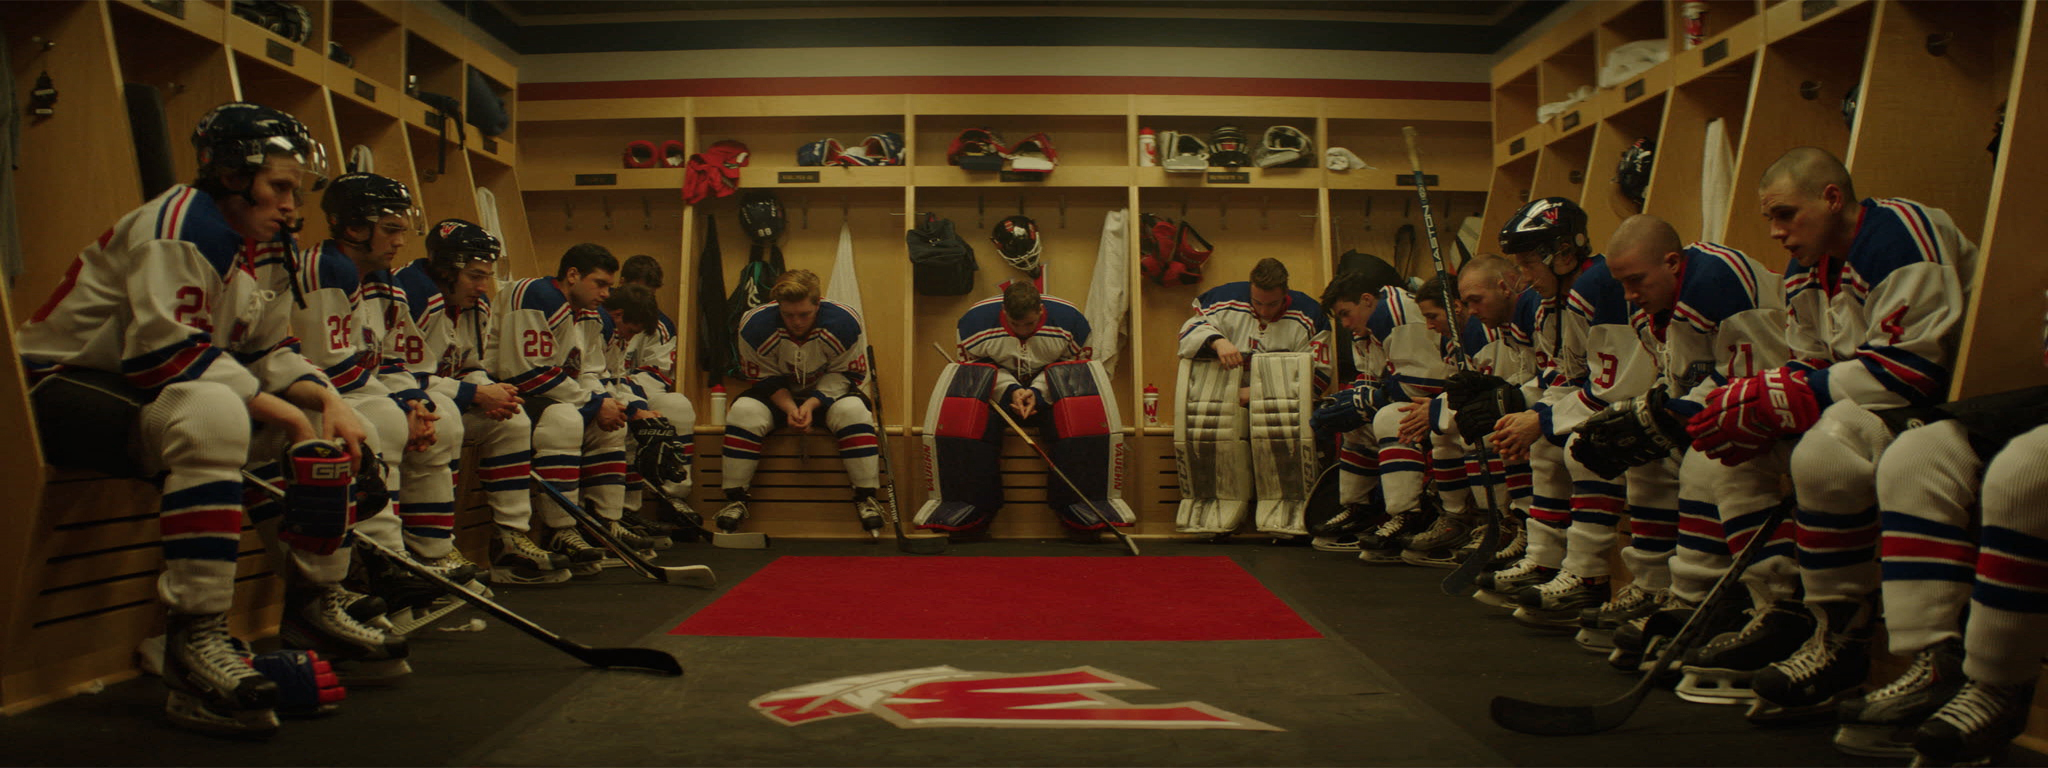 A still from Kevan Funk's award-winning feature film  Hello Destroyer , which explores violence in hockey culture and the impact it has on individuals, families, and communities.